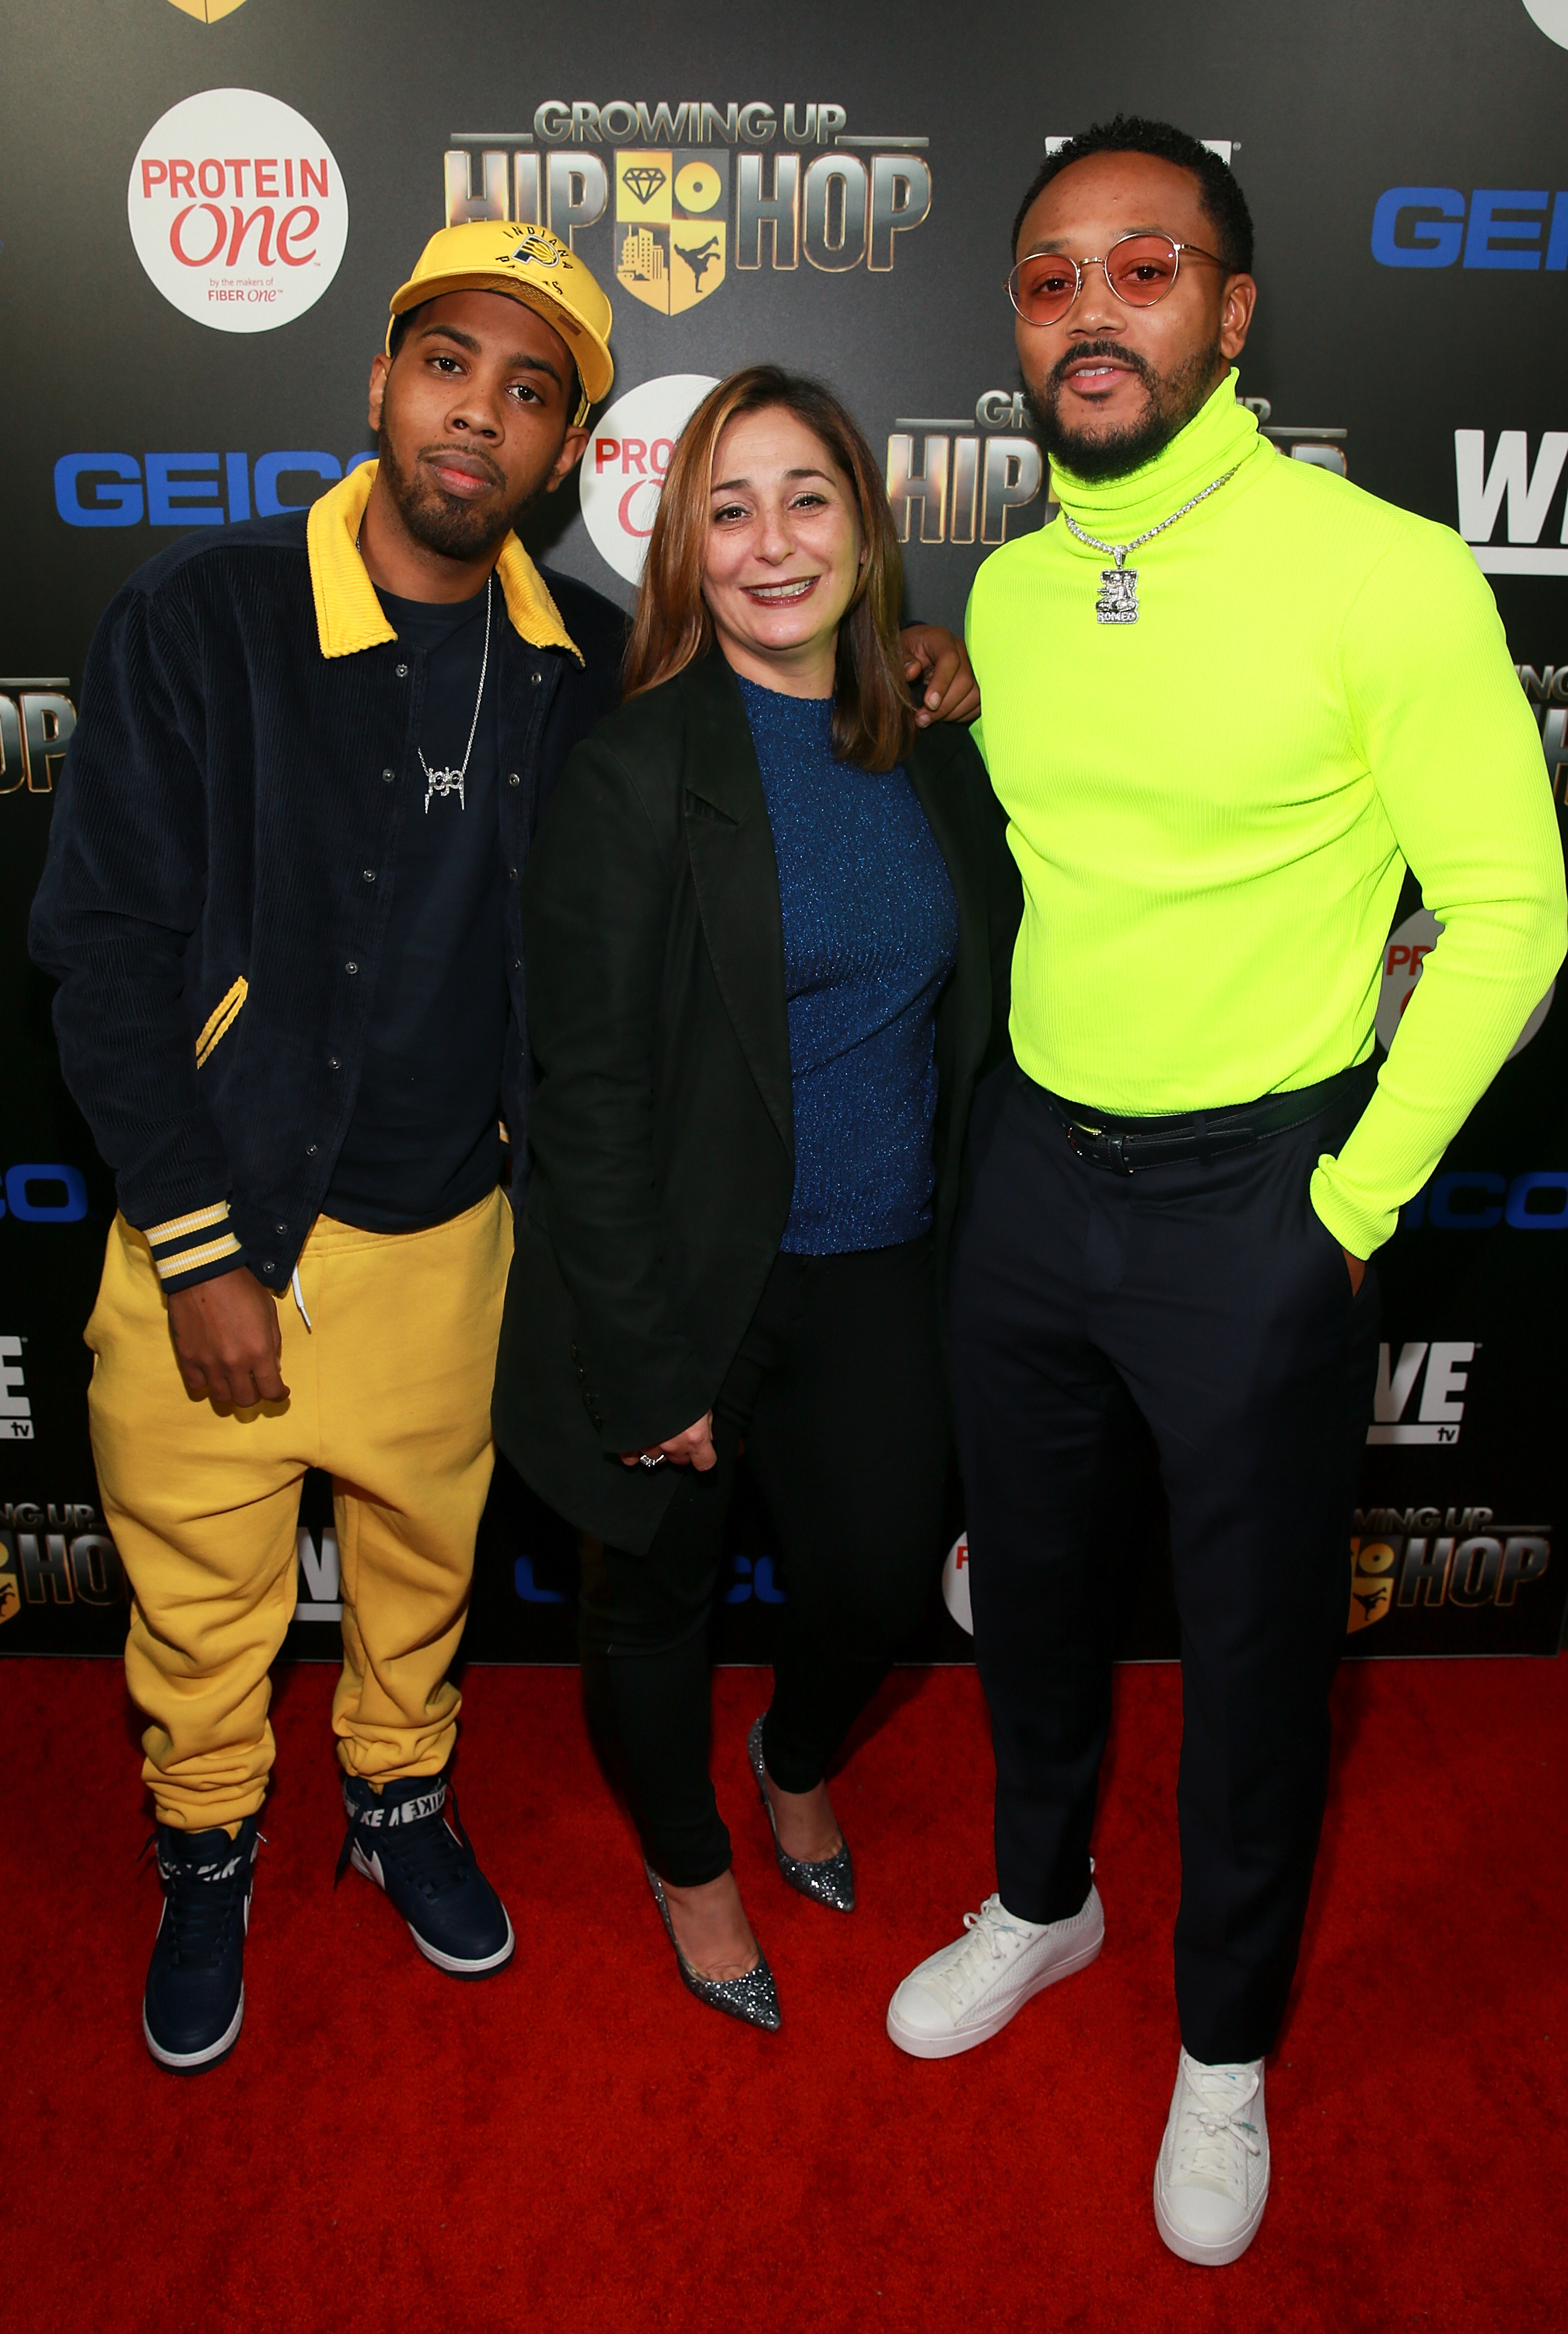 "(L - R) Jojo Simmons, Executive Vice President of WE tv Lauren Gellert, and Romeo Miller attend the ""Growing Up Hip Hop"" season 4 party on December 4, 2018 at Avenue in New York City. (Photo by Bennett Raglin/Getty Images for WE tv)"